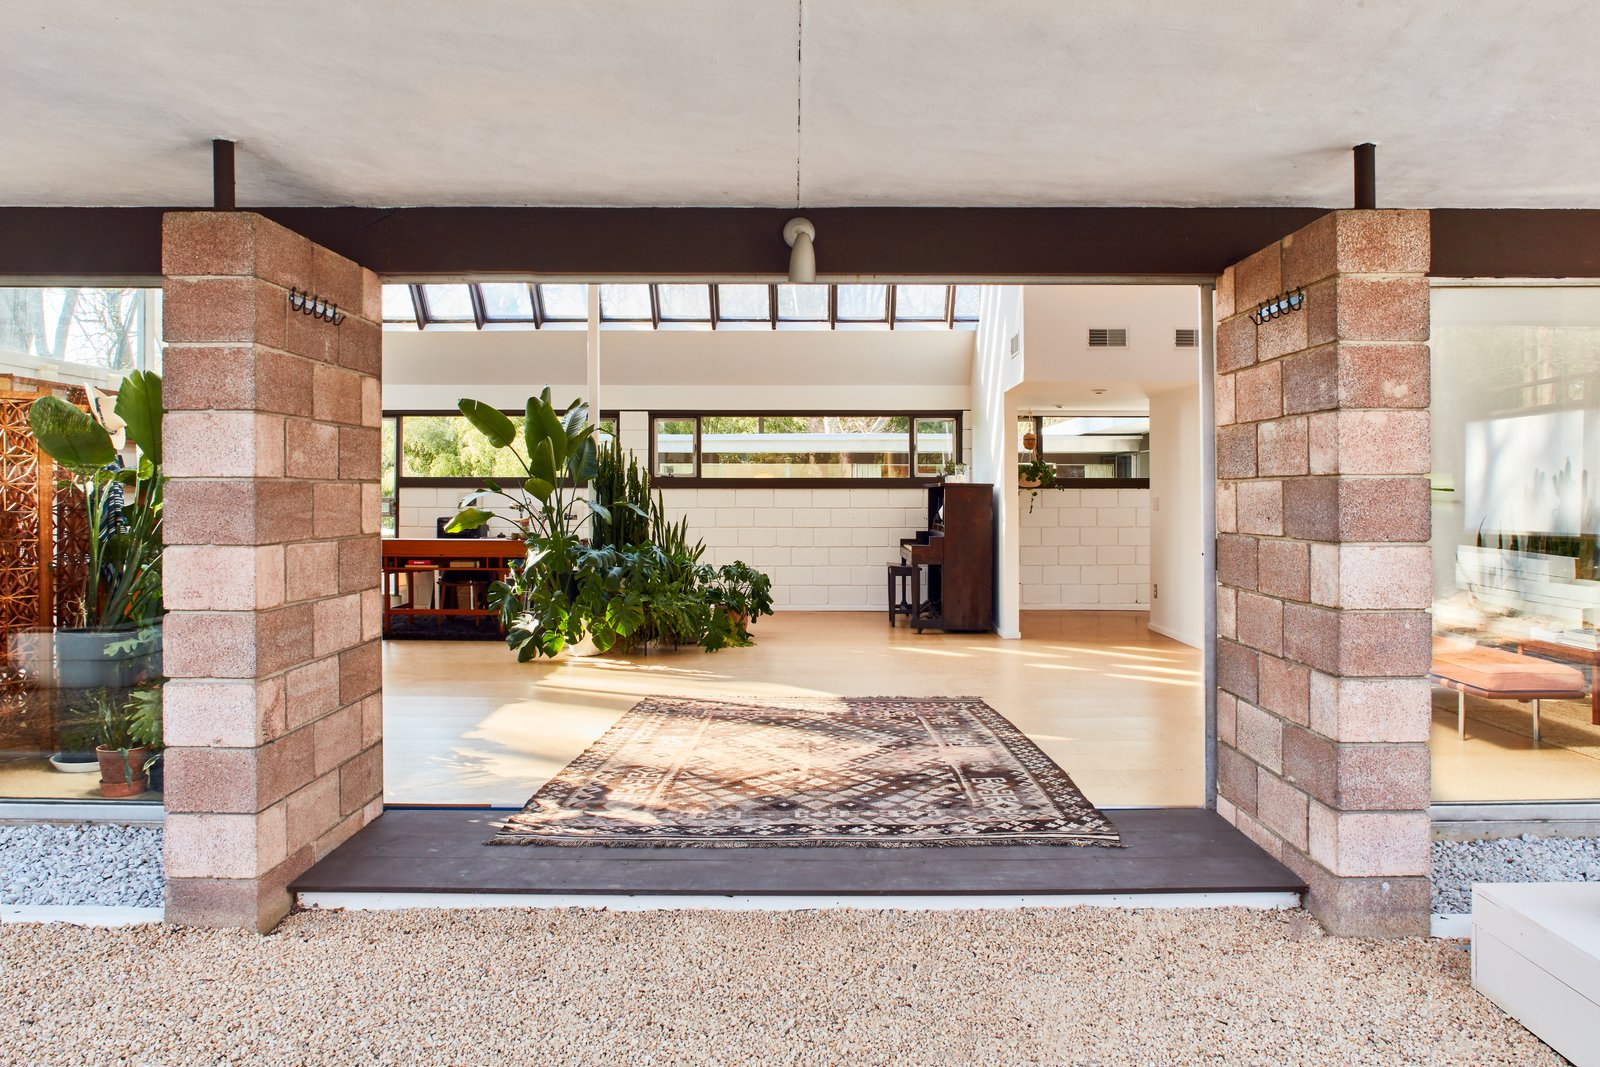 Photo 8 of 13 in The Stunningly Restored Hassrick Residence by Richard Neutra Hits the Market at $2.2M